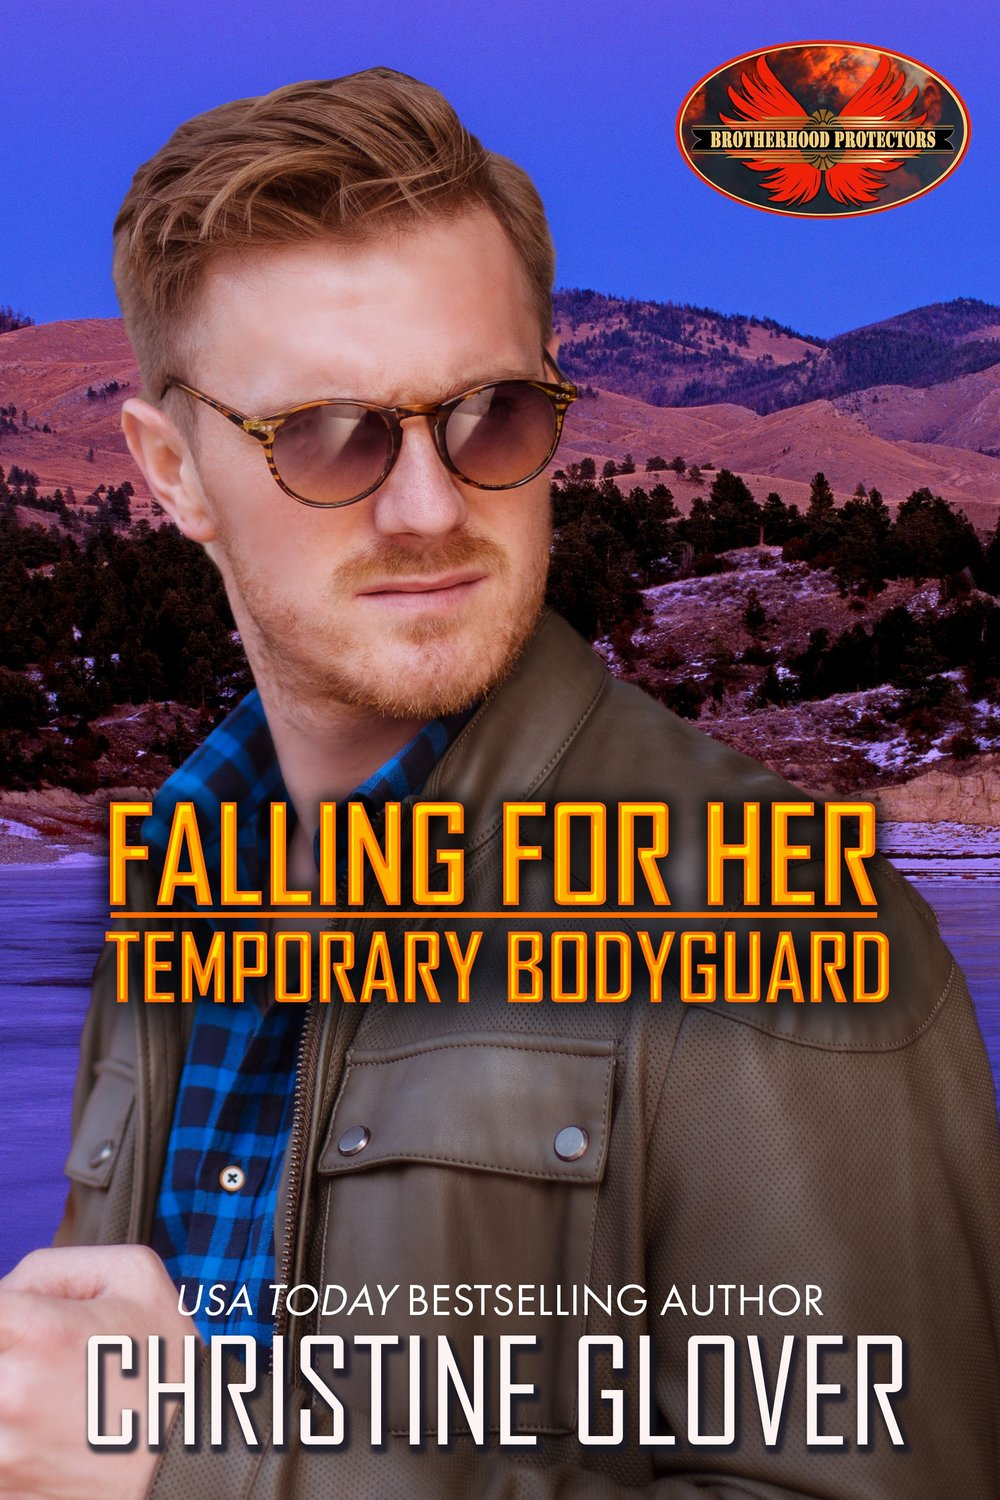 Falling for Her Temporary Bodyguard